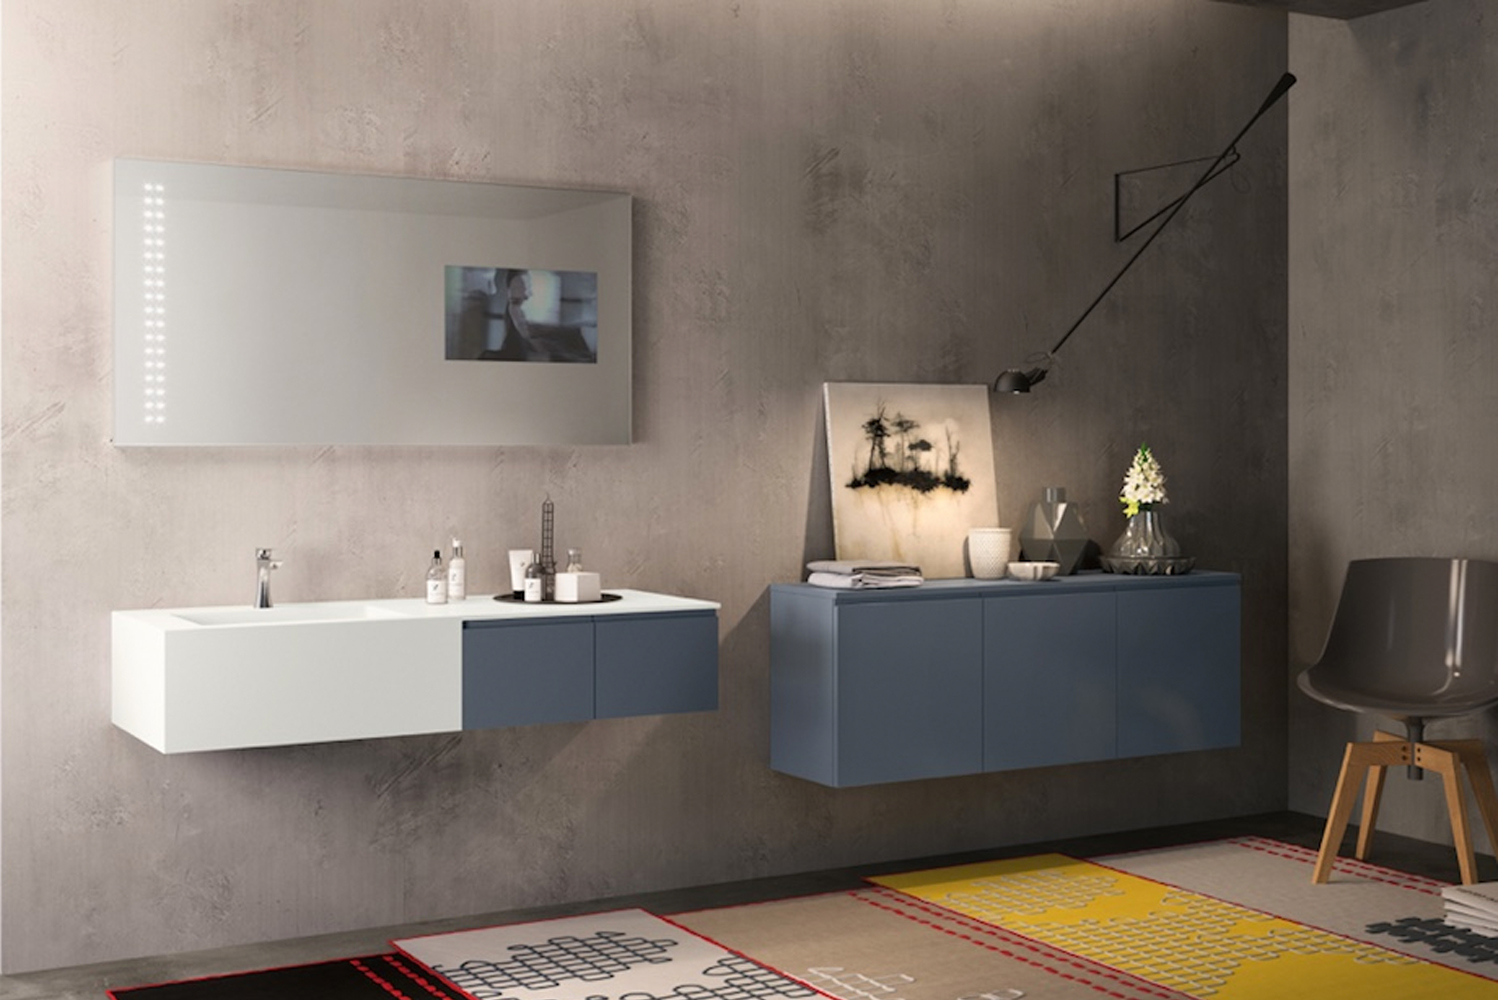 Hastings Tile & Bath launched the Stratos vanities.